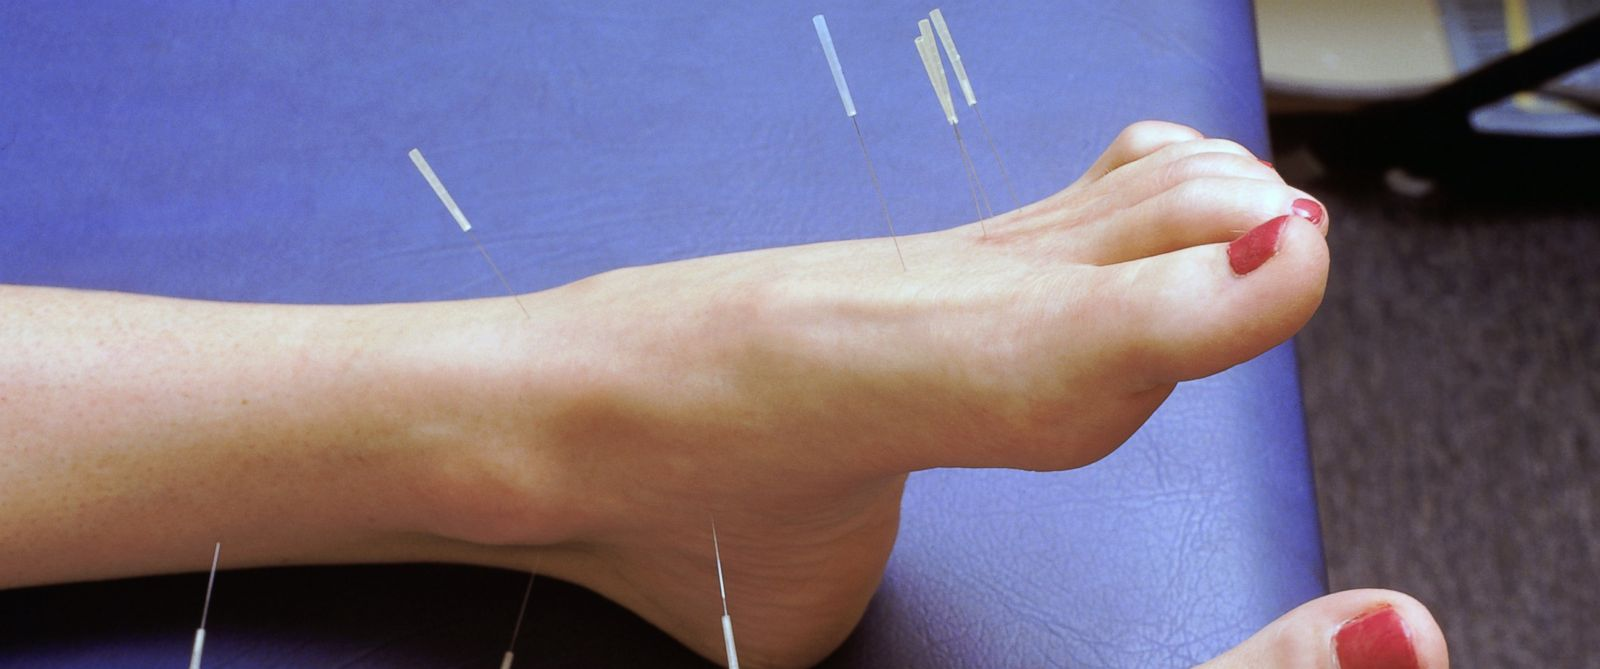 PHOTO: Some studies show that acupuncture is better for pain relief than pills or surgery.